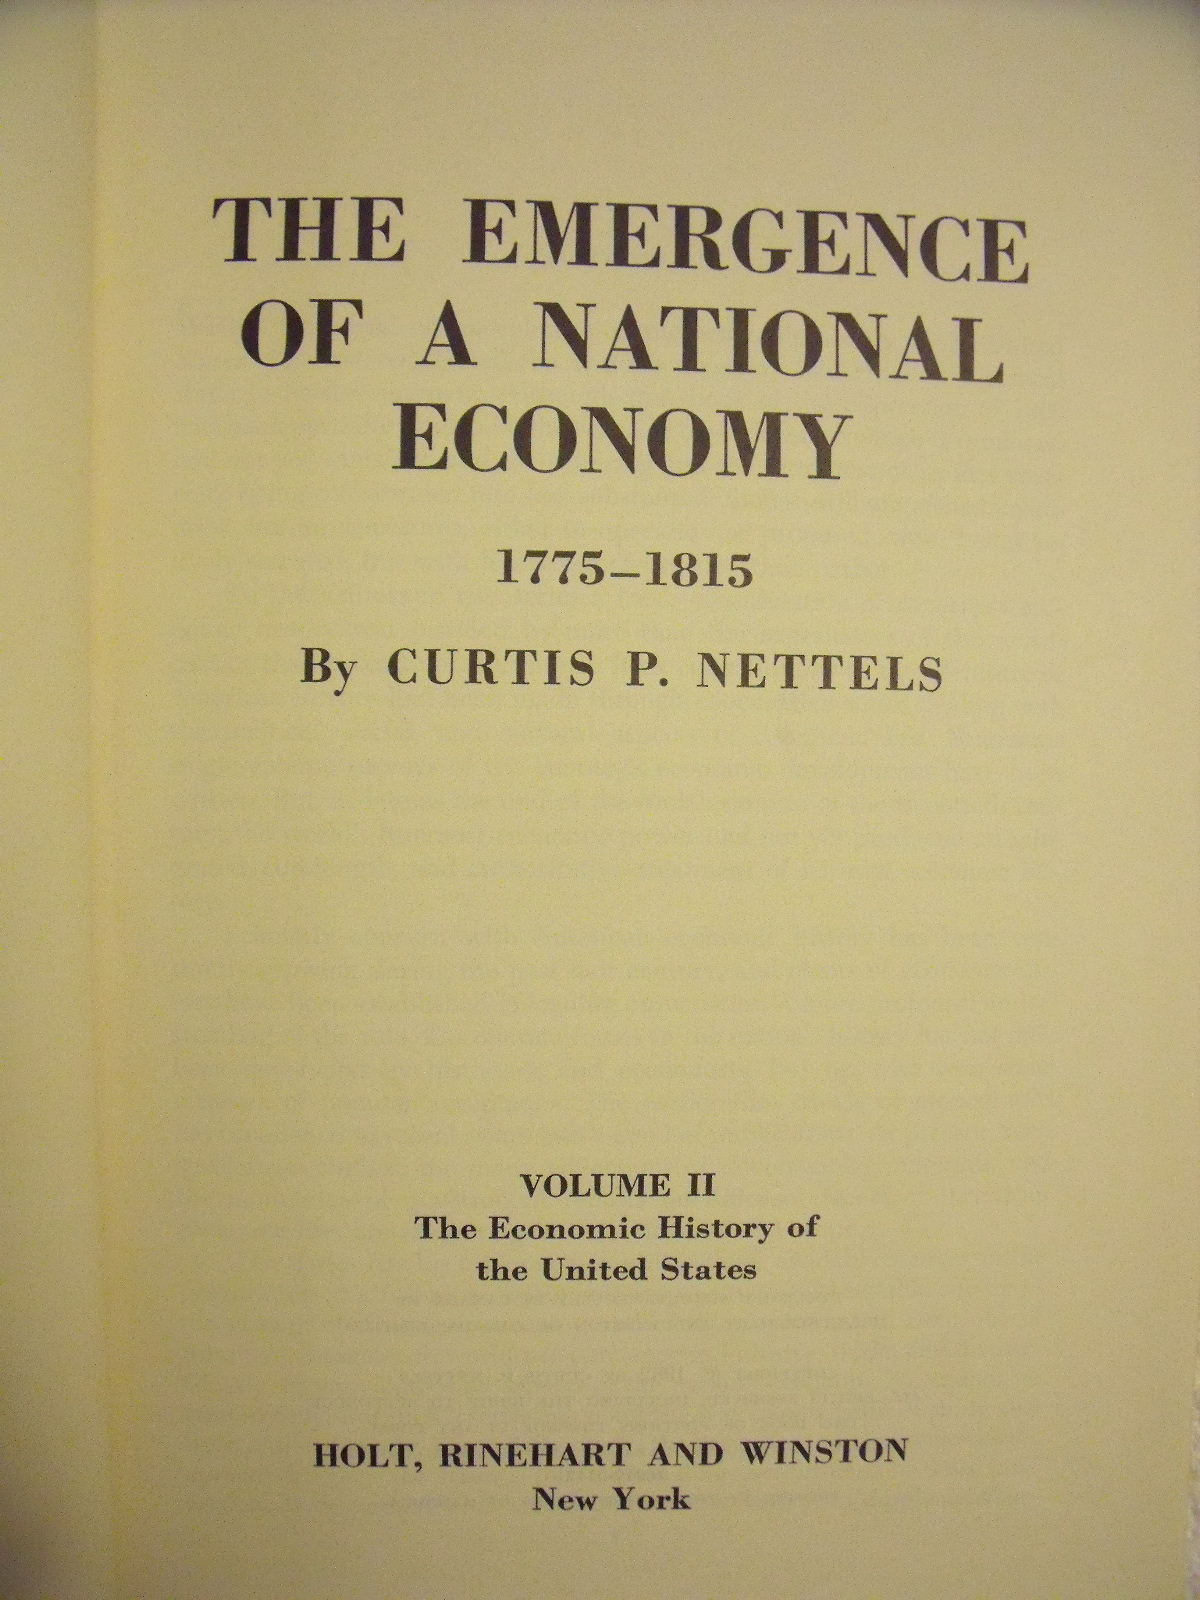 The Emergence Of A National Economy Volume Ii By Curtis P Nettels